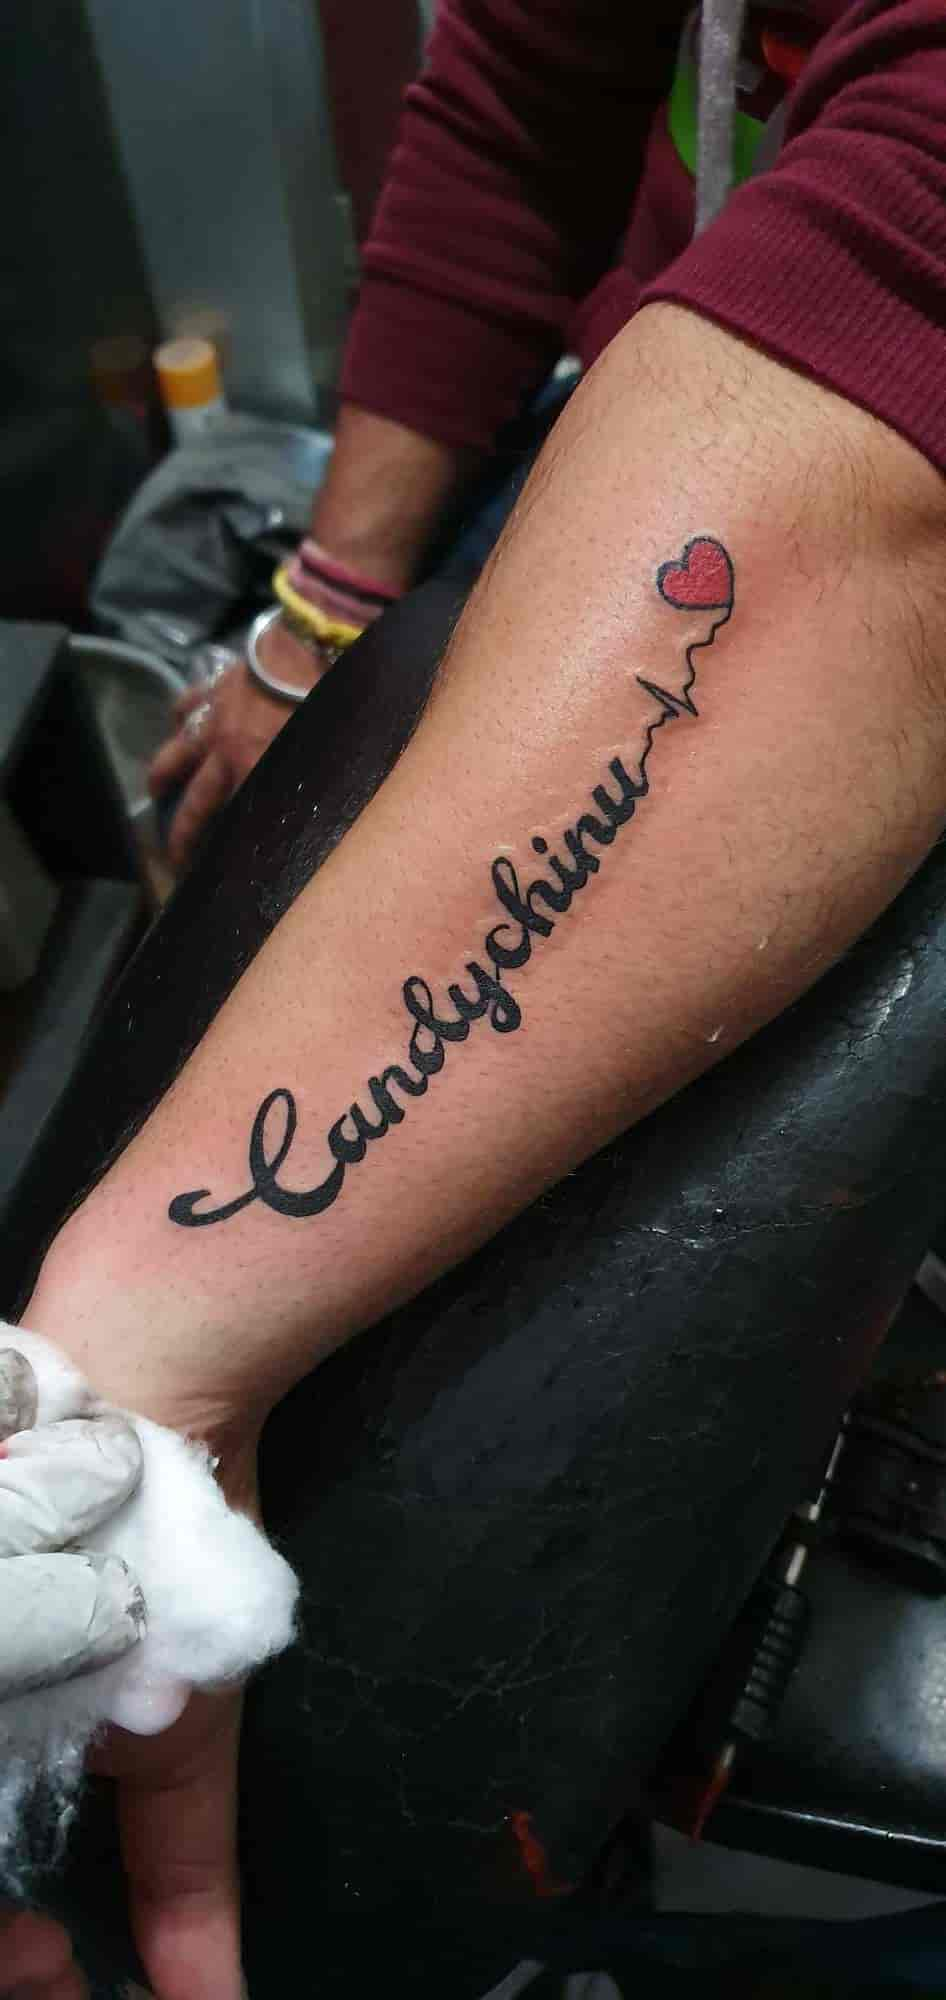 Sandhu Ink Z Tattooz Celebration Mall Tattoo Artists In Amritsar Justdial We have 1000's of tattoo ideas and daily inspiration from artists around the world. sandhu ink z tattooz celebration mall